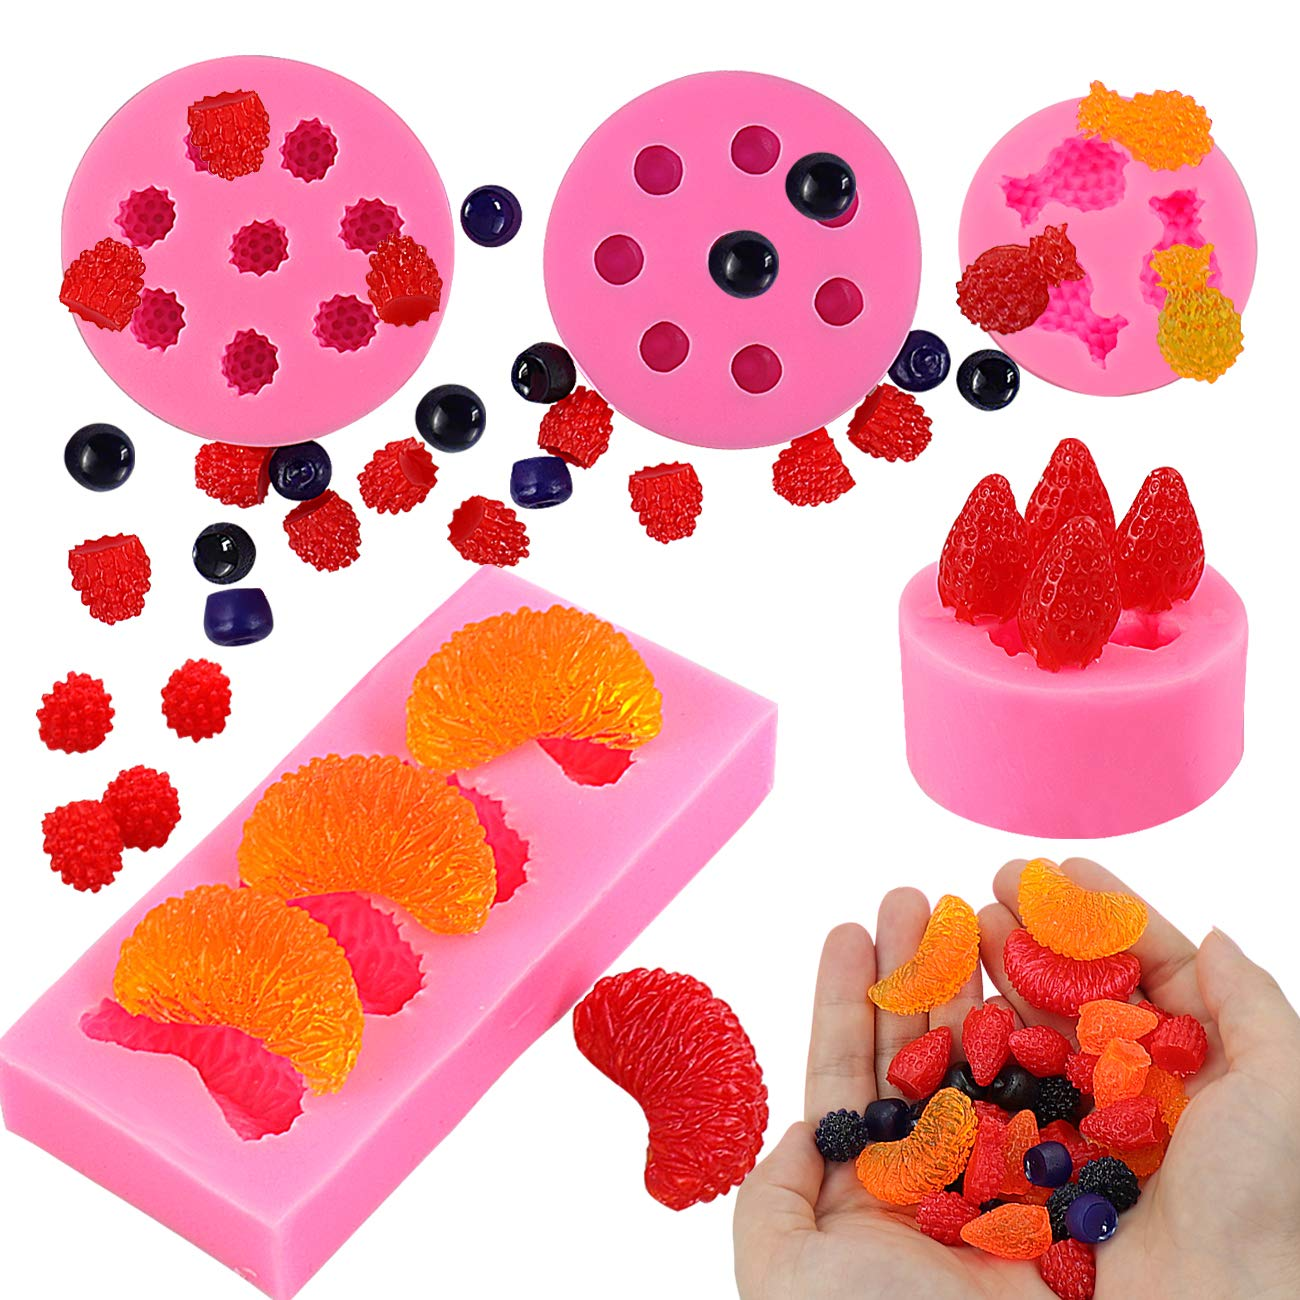 5Pcs Fruit Shaped Jelly Molds, 3D Mini Pineapple Strawberry Orange Blueberry Mulberry Candle Silicone Fruit Mold for Cupcake Decorating, Soap, Chocolate